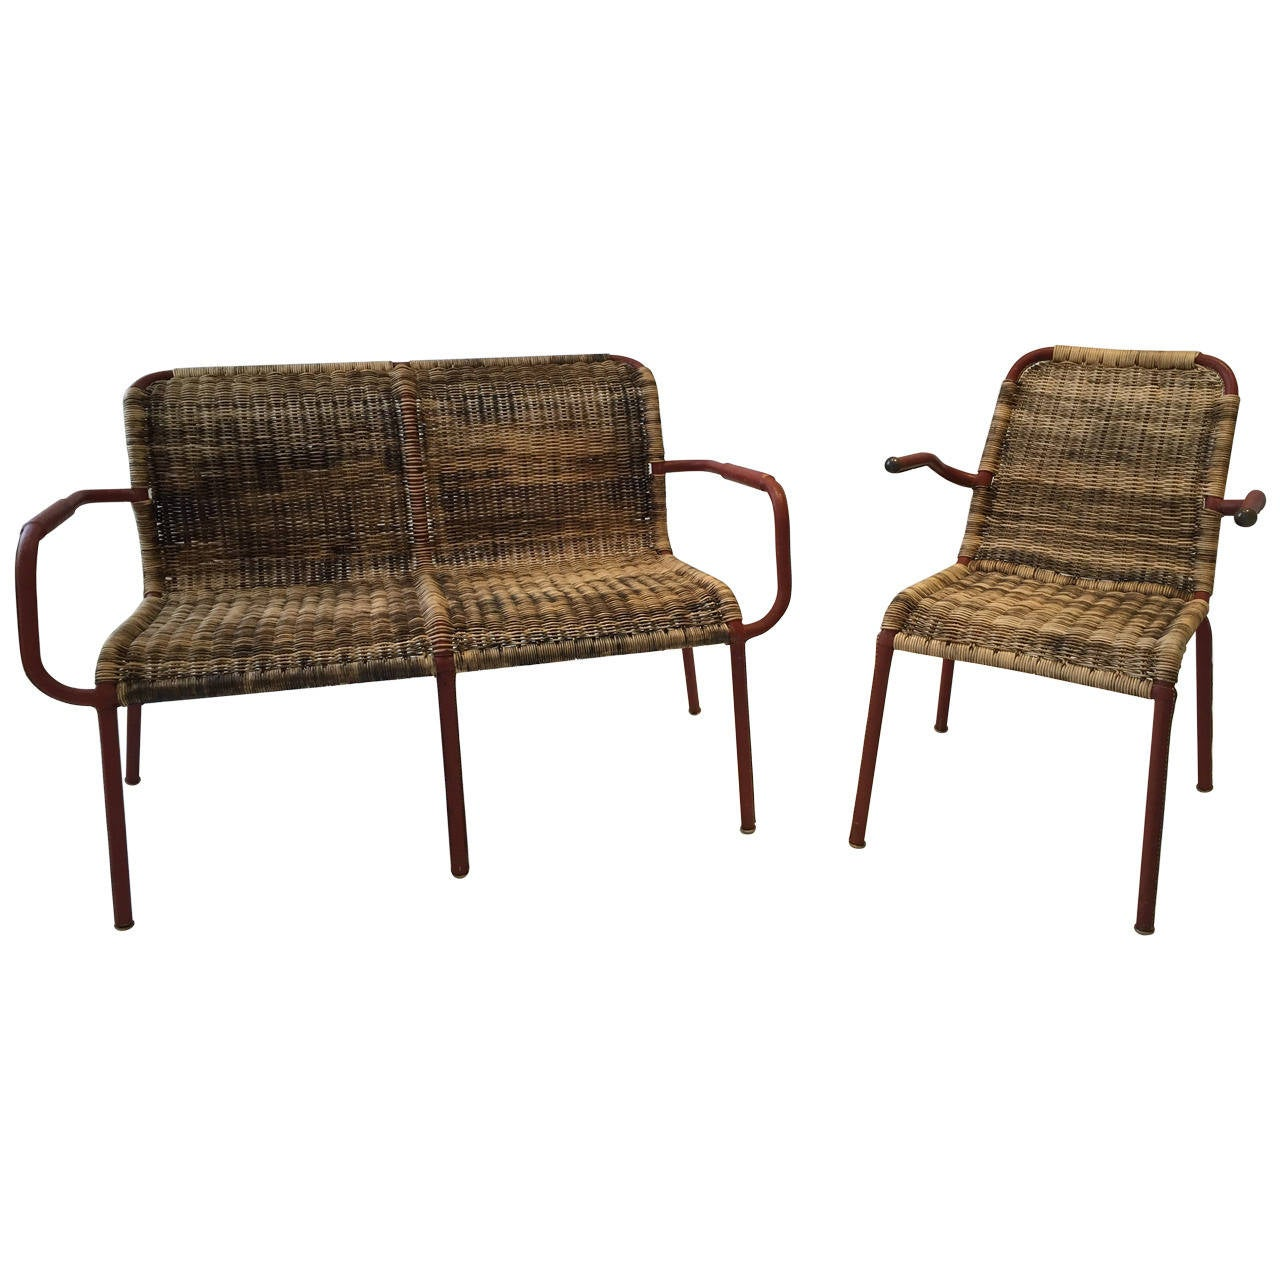 Jacques Adnet Early Stitched Leather and Wicker Set 1